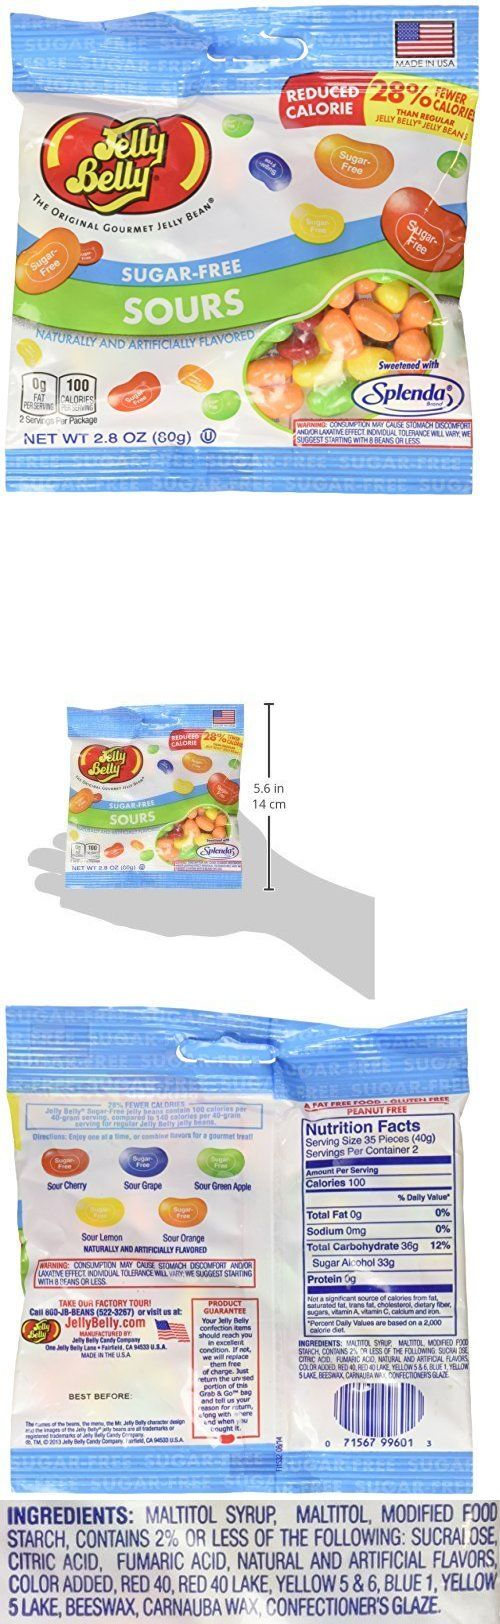 Jelly Beans 166723: Jelly Belly Sugar Free Sours Jelly Beans 2.8Oz Jelly Beans, New -> BUY IT NOW ONLY: $102.98 on eBay!